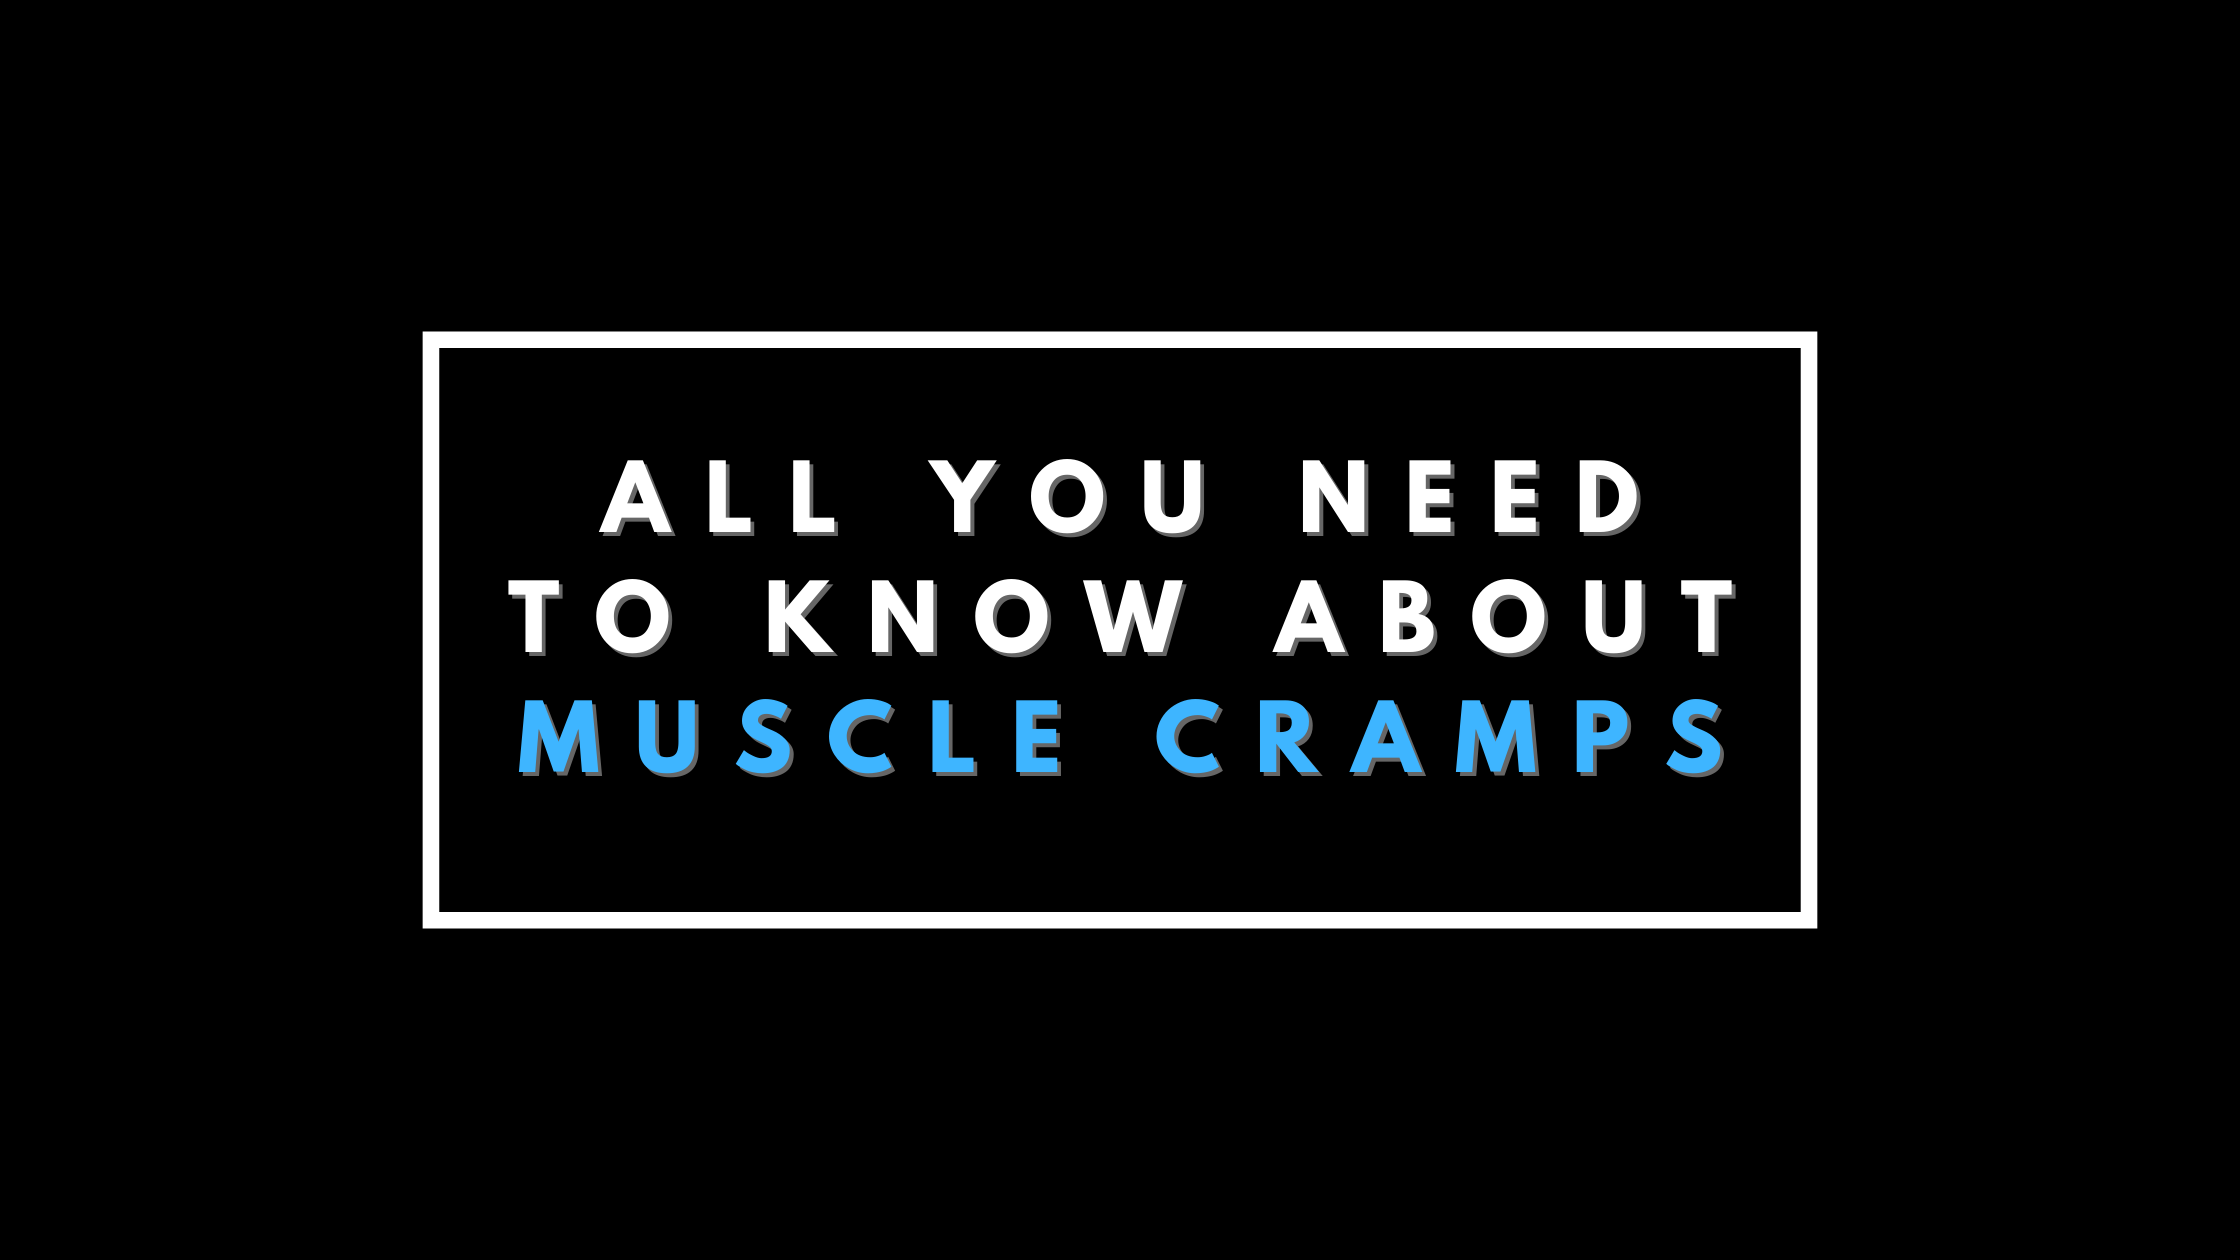 All You Need to Know About Muscle Cramps